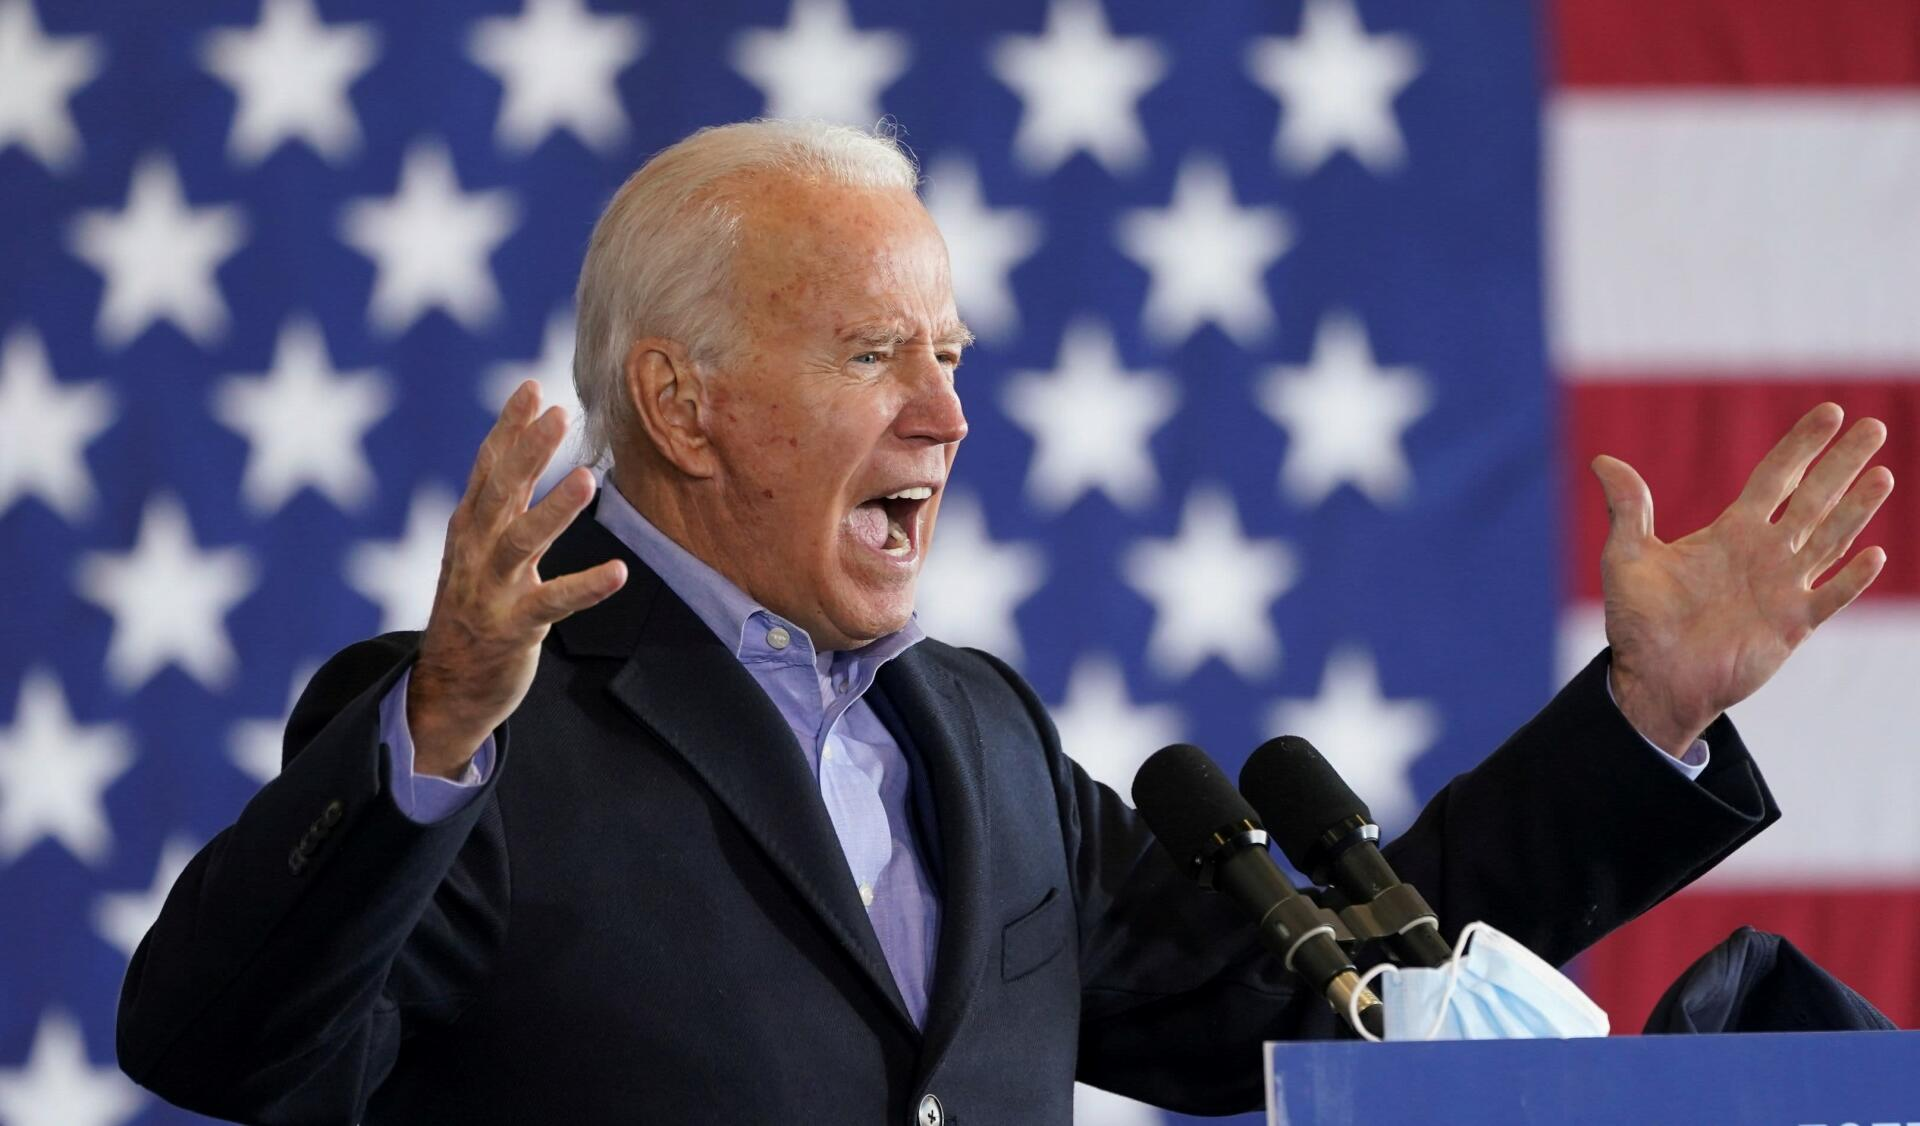 Biden`s instruction: The policy of the US is determined